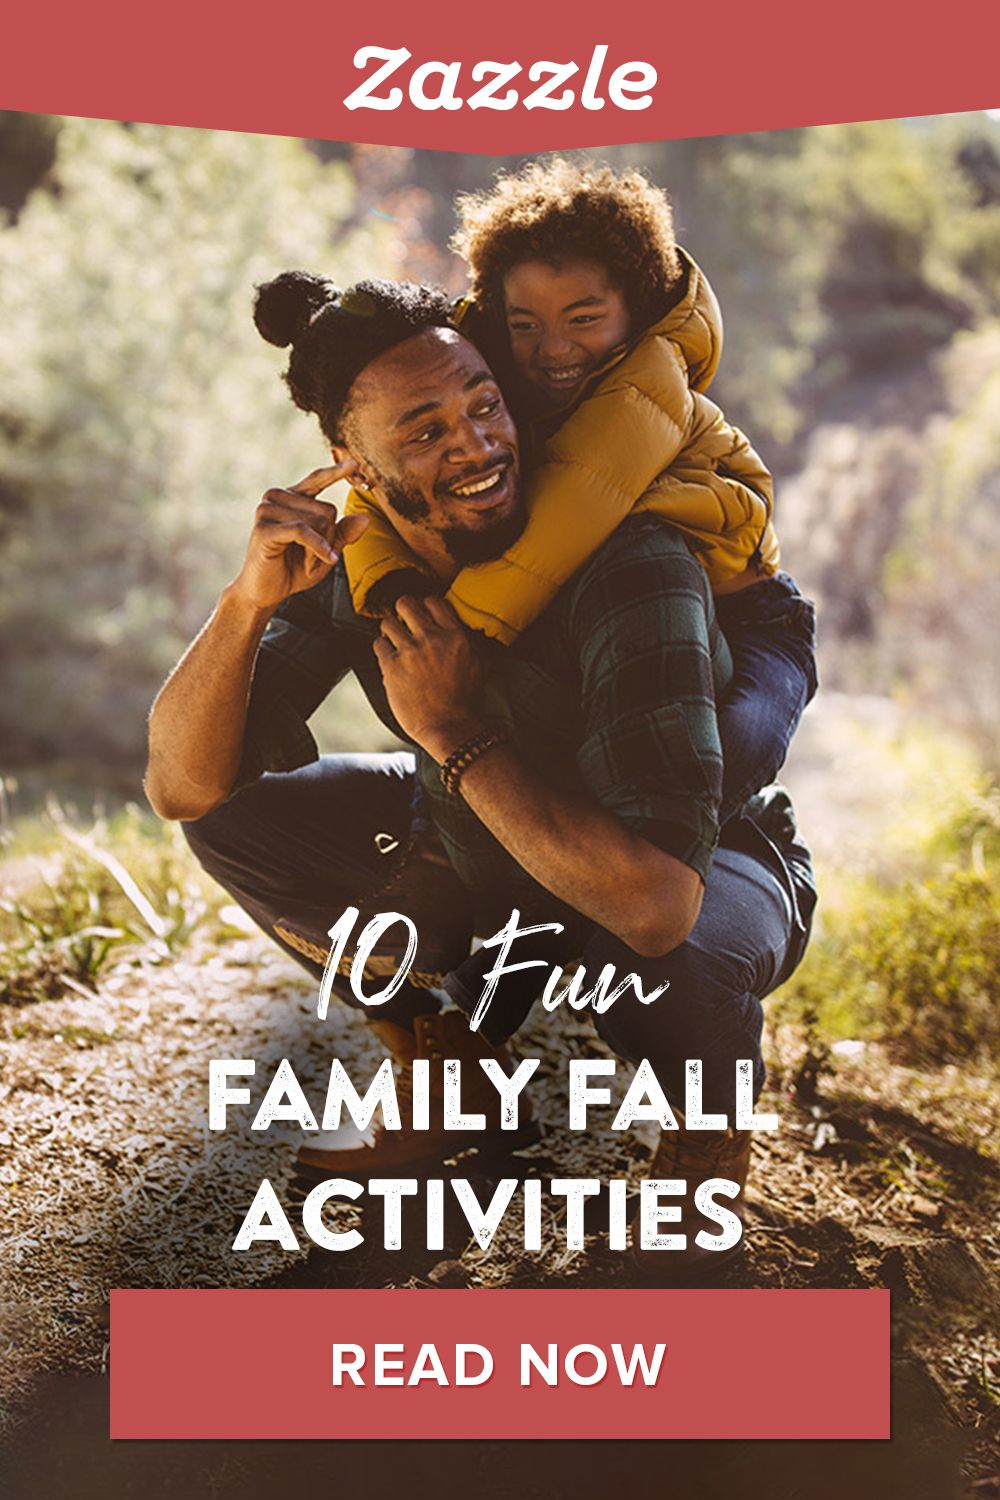 Whether your family is the crafty type or prefers outdoor adventures, you'll find something on our list of fall festive activities for everyone, even while maintaining social distancing.